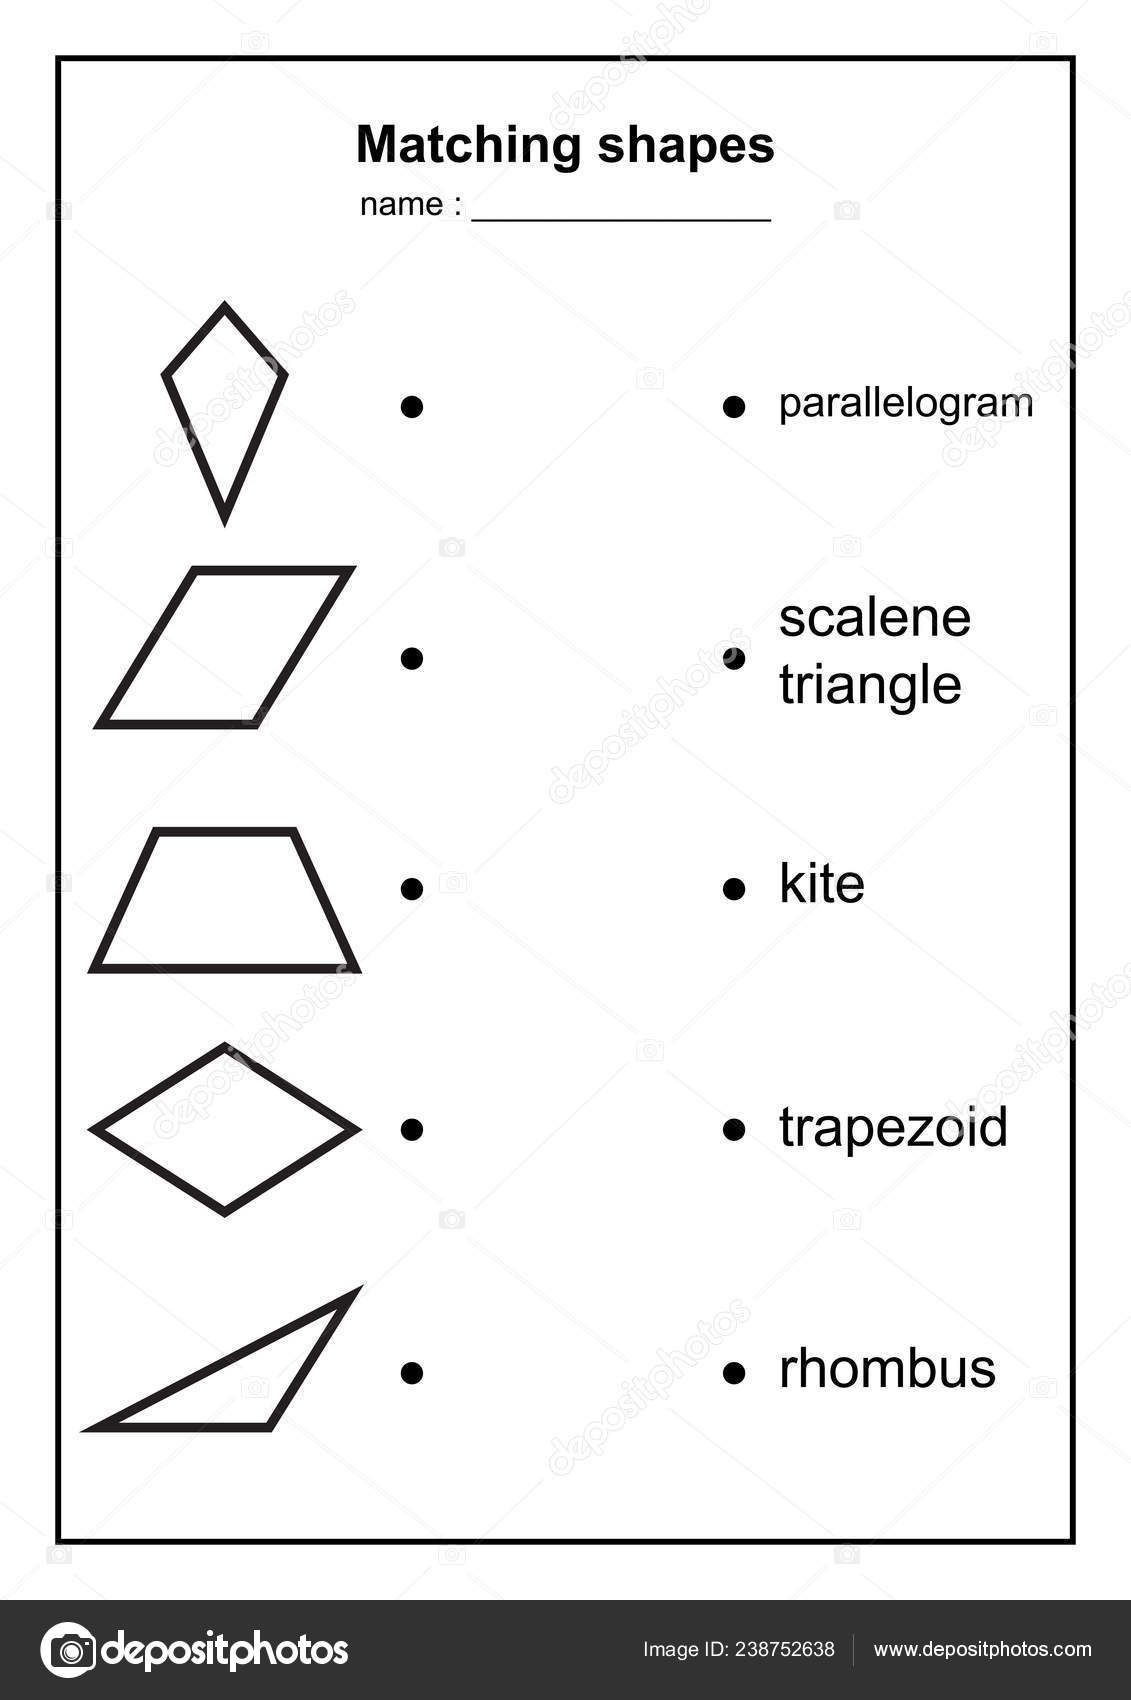 picture about Printable Geometry Shapes named Geometry Form Matching Recreation Informative Geometric Styles